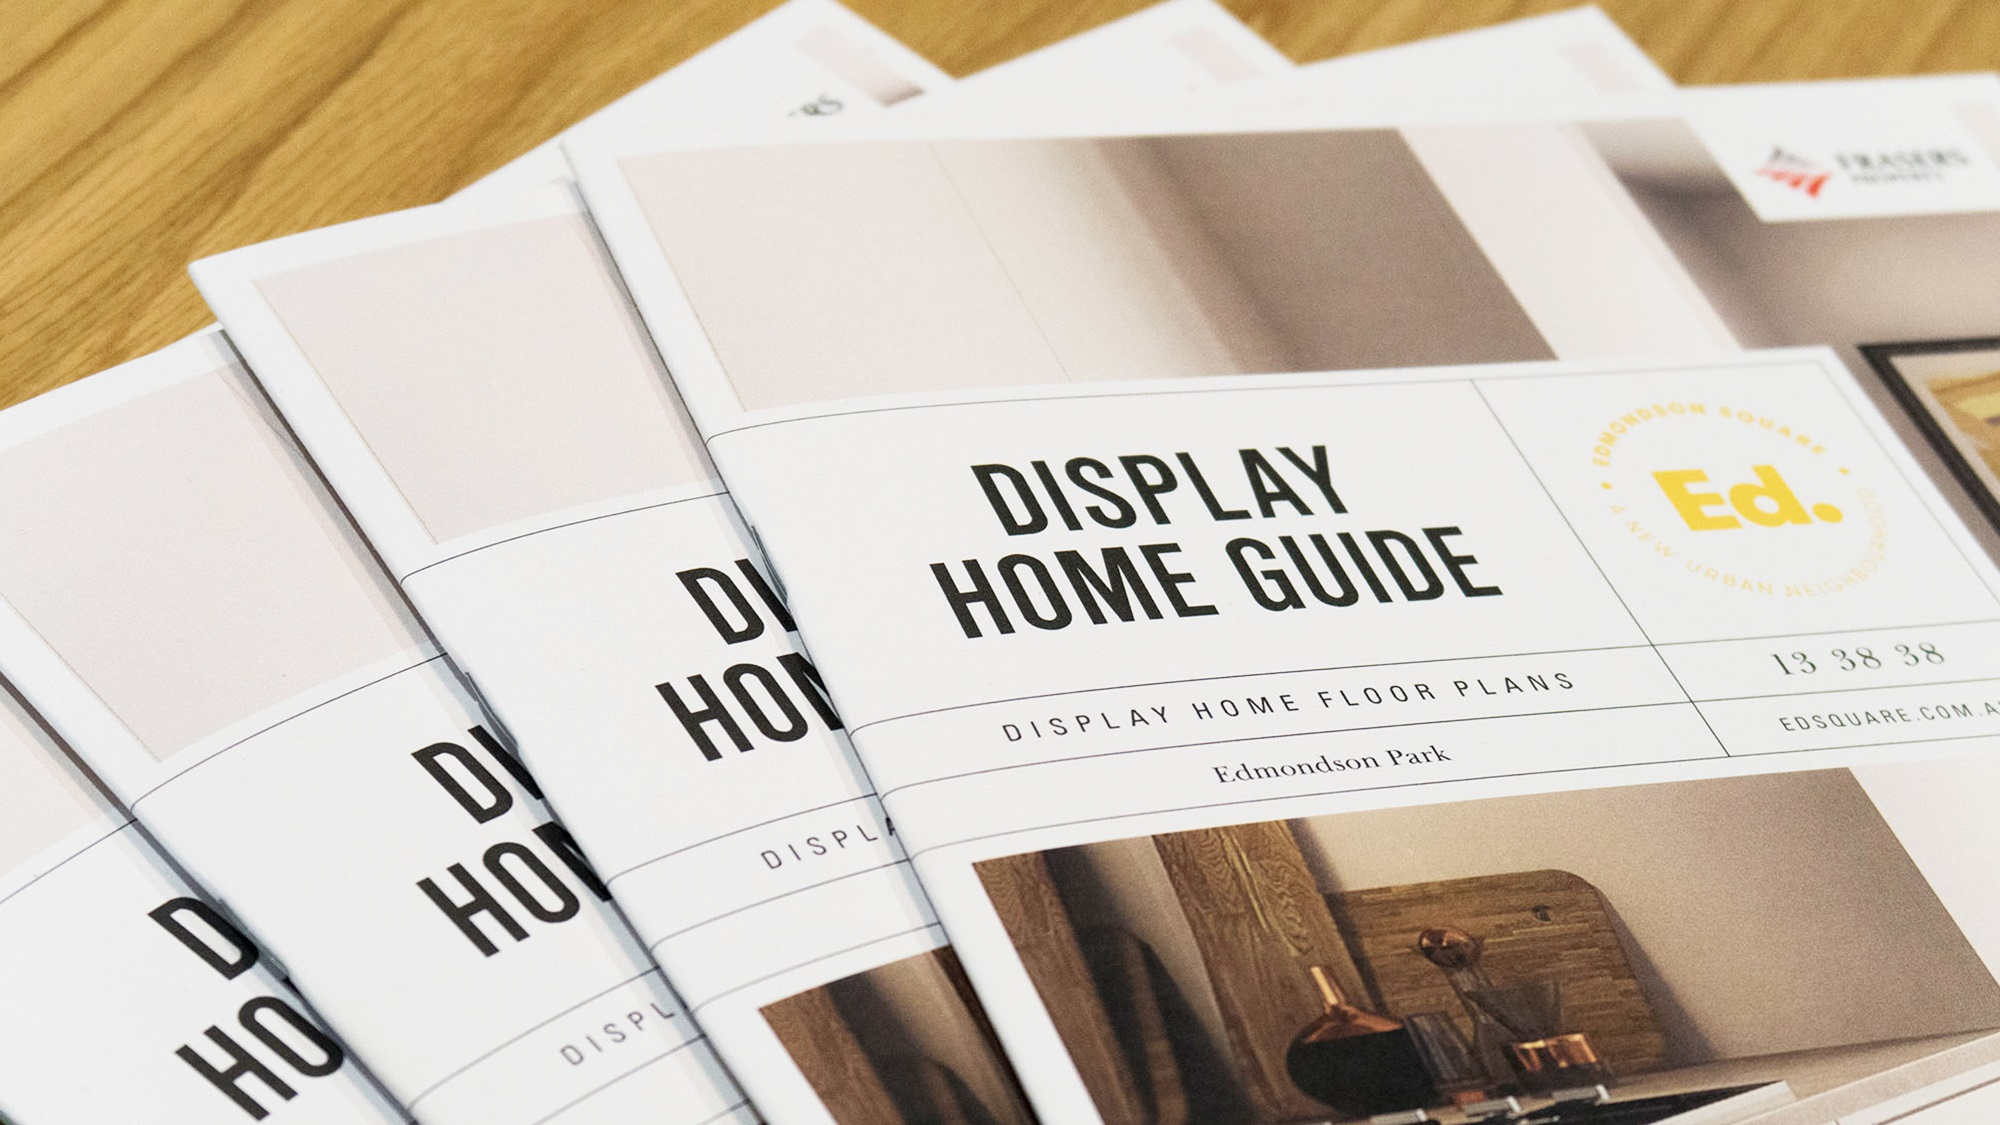 Display Home Guide